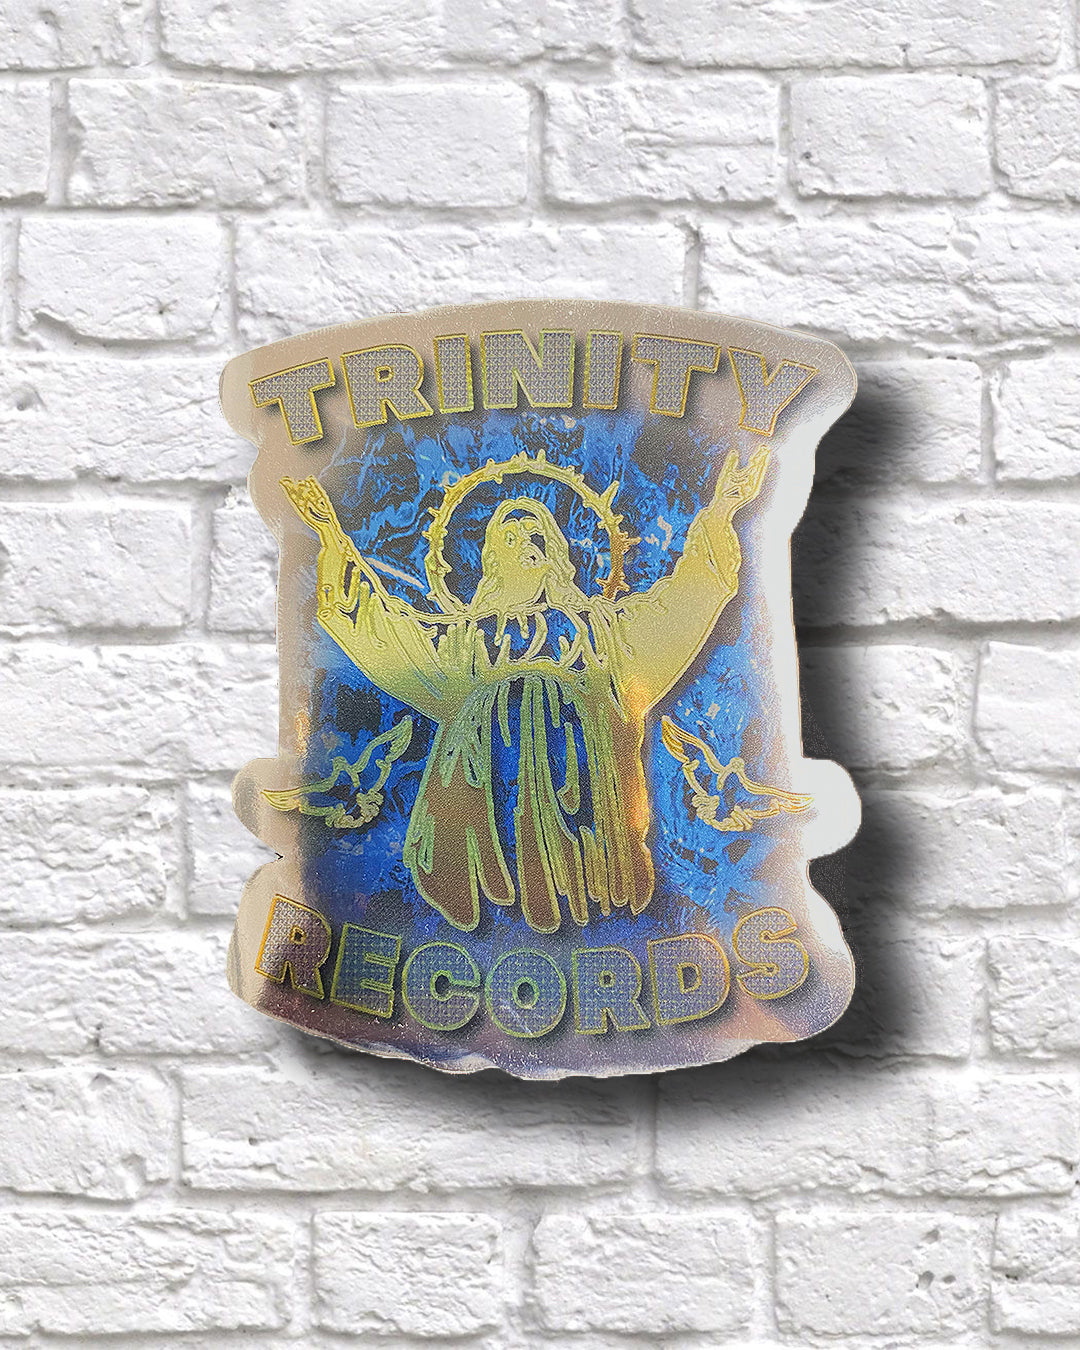 TRINITY RECORDS STICKER